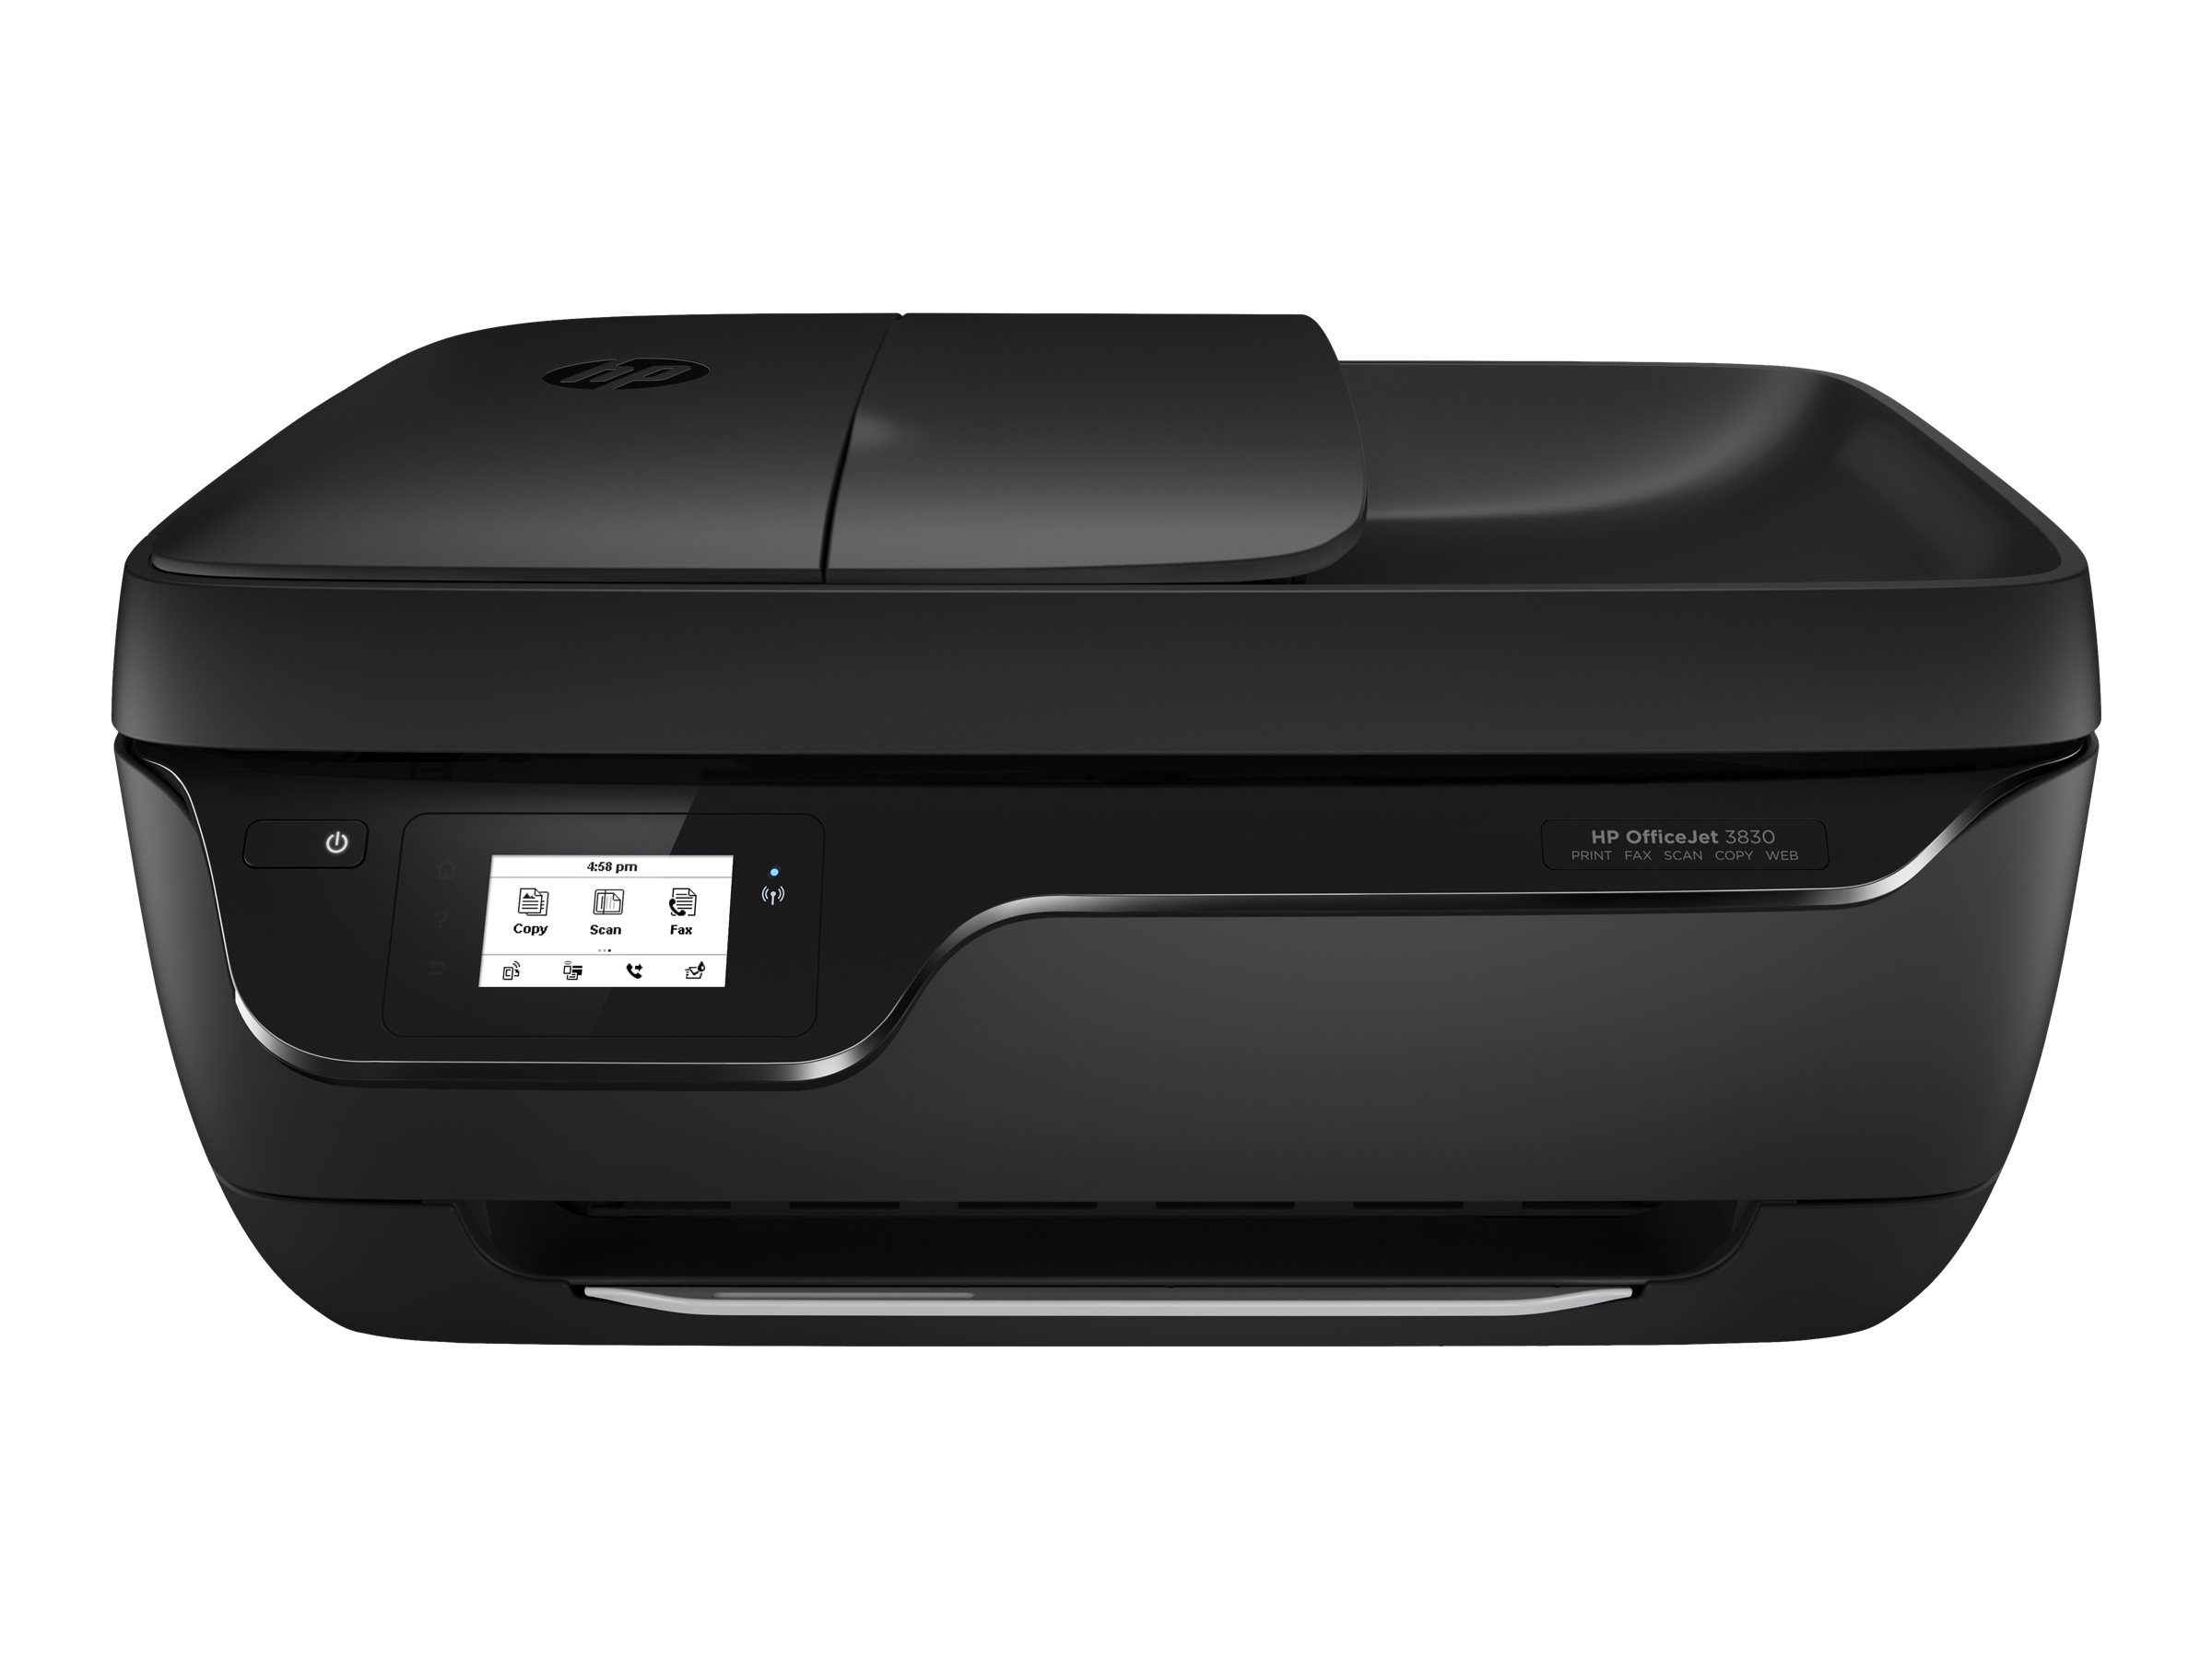 Image for Hp Officejet 3830 All-In-One - Multifunction Printer (Color) from Circuit City